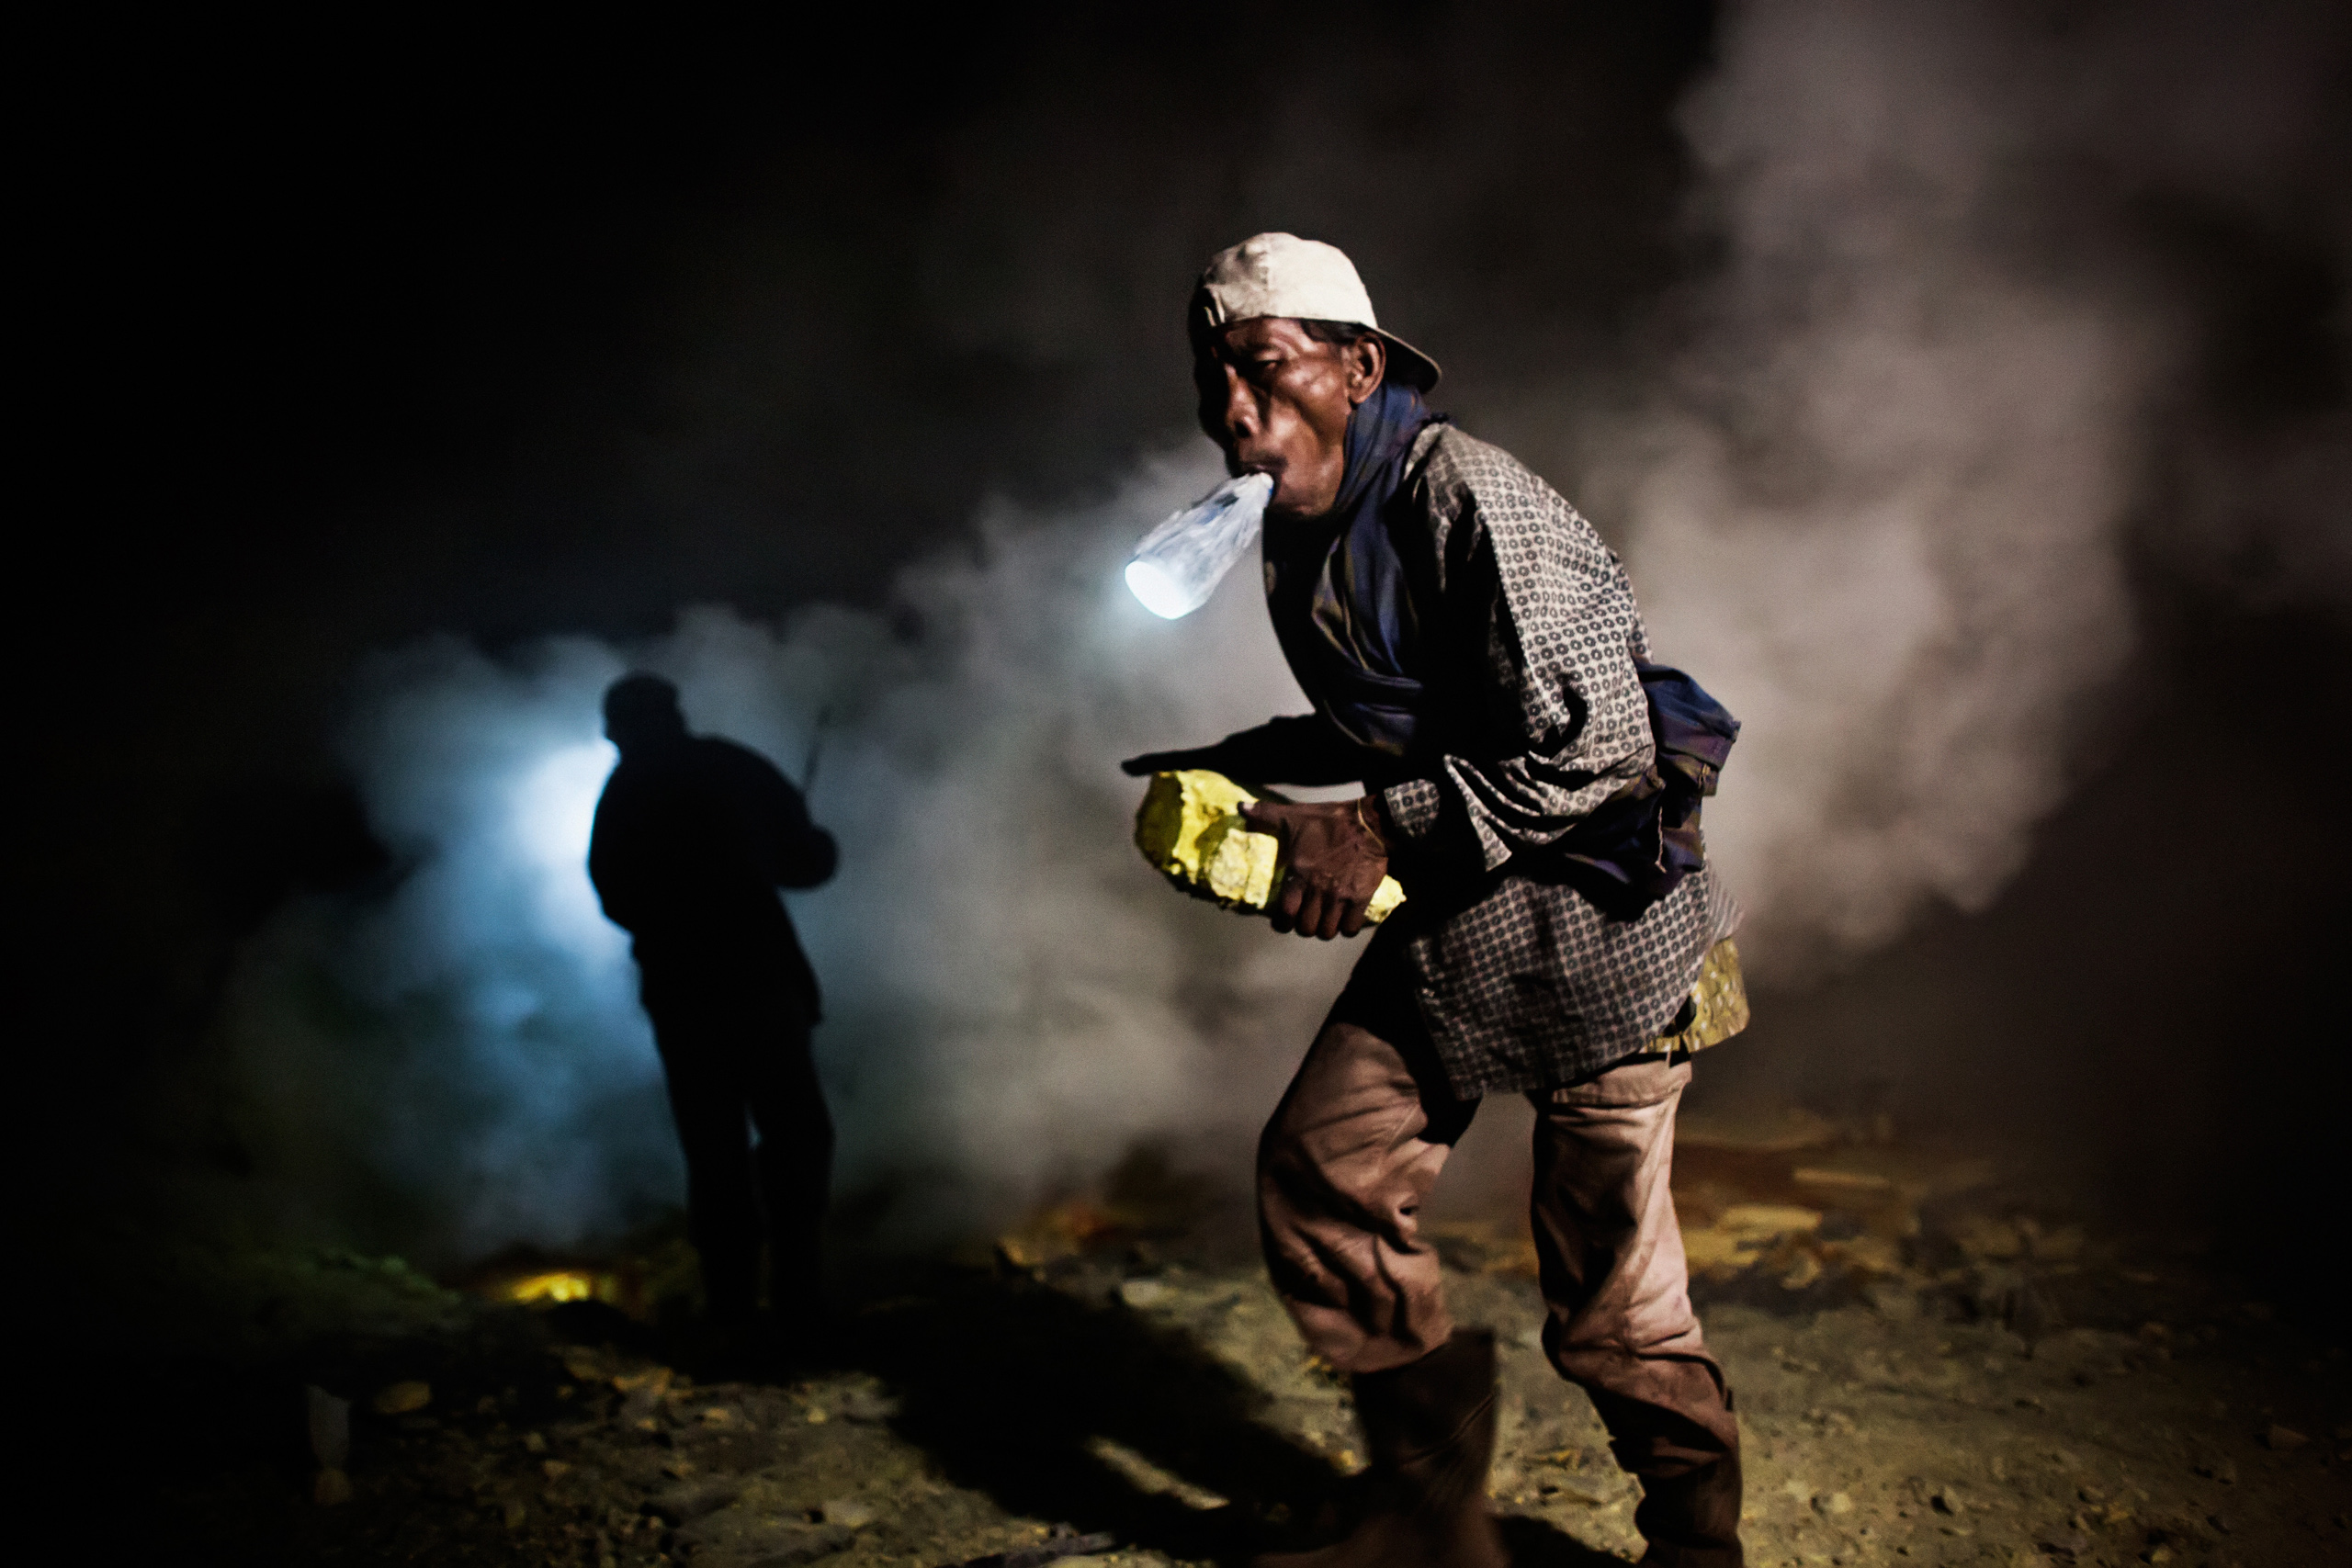 Murahman, 47, a sulfur miner for 25 years, Nov. 4, 2014.